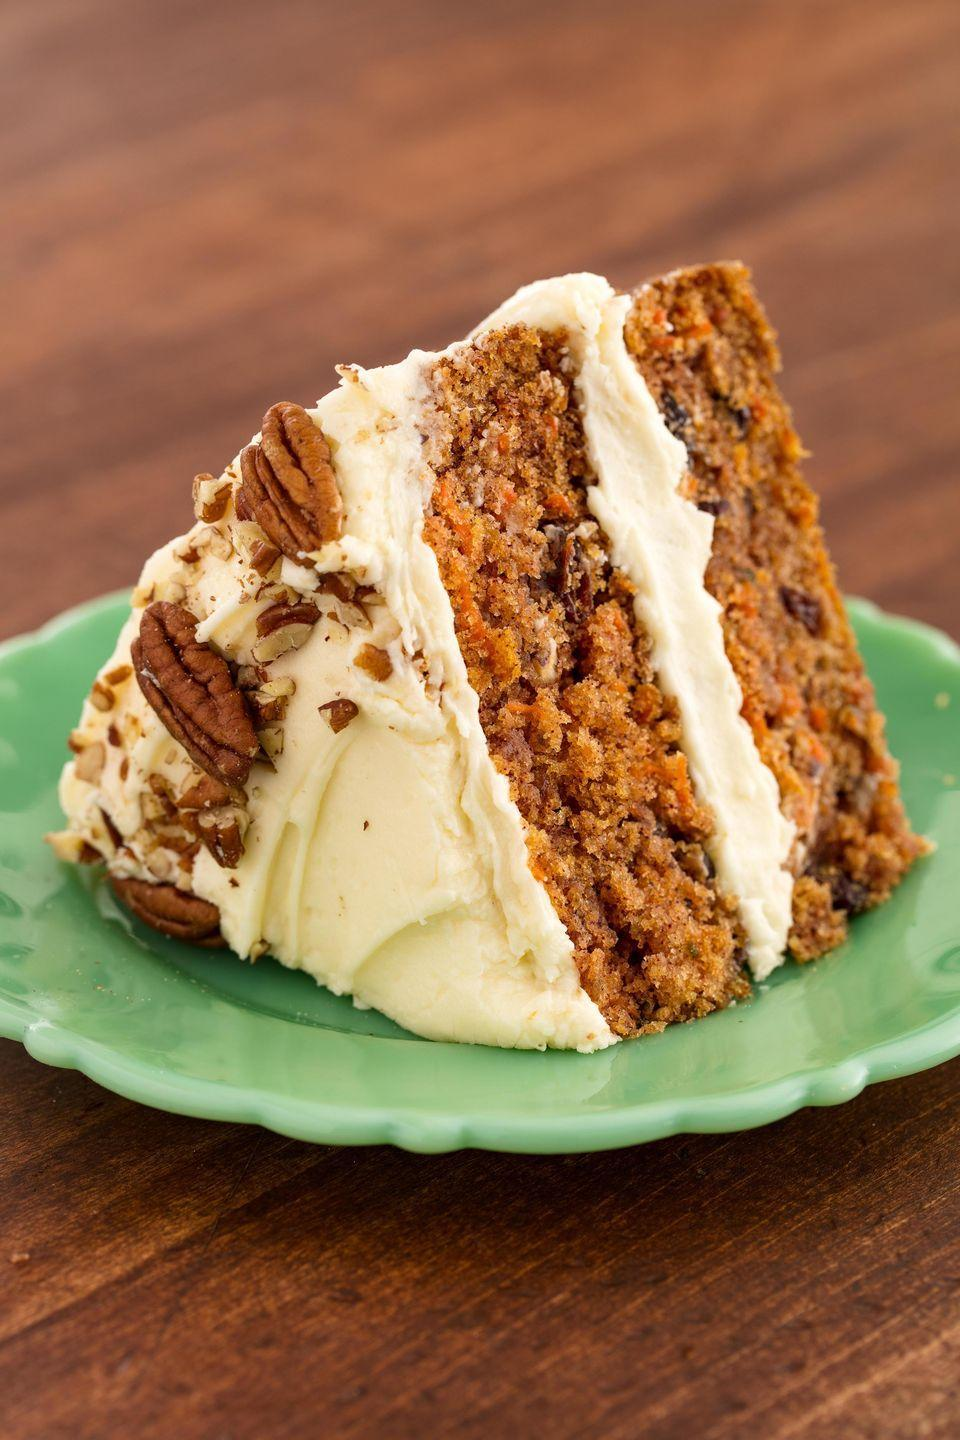 """<p>Carrot cake and cream cheese frosting go together like peanut butter and jelly.</p><p>Get the recipe from <a href=""""https://www.delish.com/cooking/recipe-ideas/recipes/a58283/best-carrot-cake-recipe/"""" rel=""""nofollow noopener"""" target=""""_blank"""" data-ylk=""""slk:Delish"""" class=""""link rapid-noclick-resp"""">Delish</a>. </p>"""